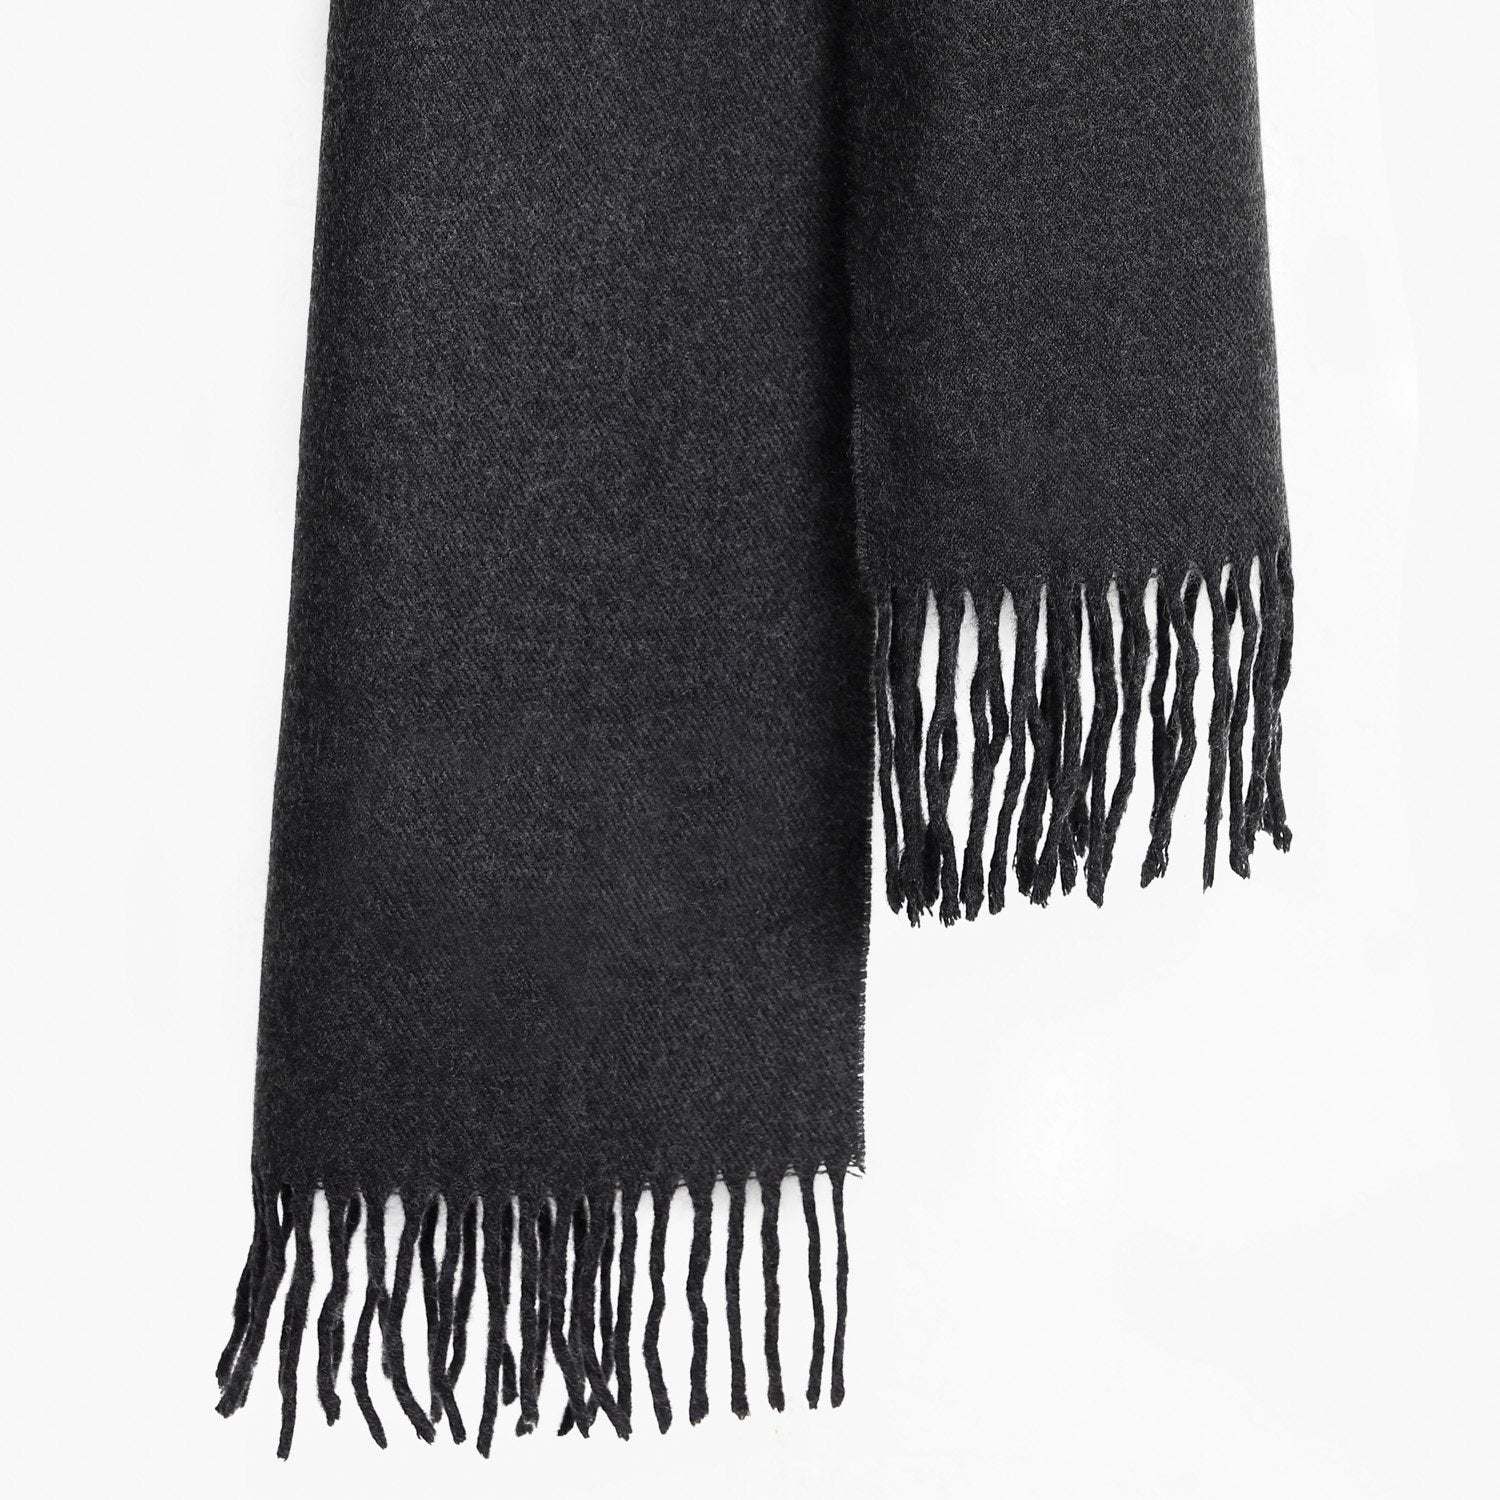 Plain Anthracite Textured Scarf